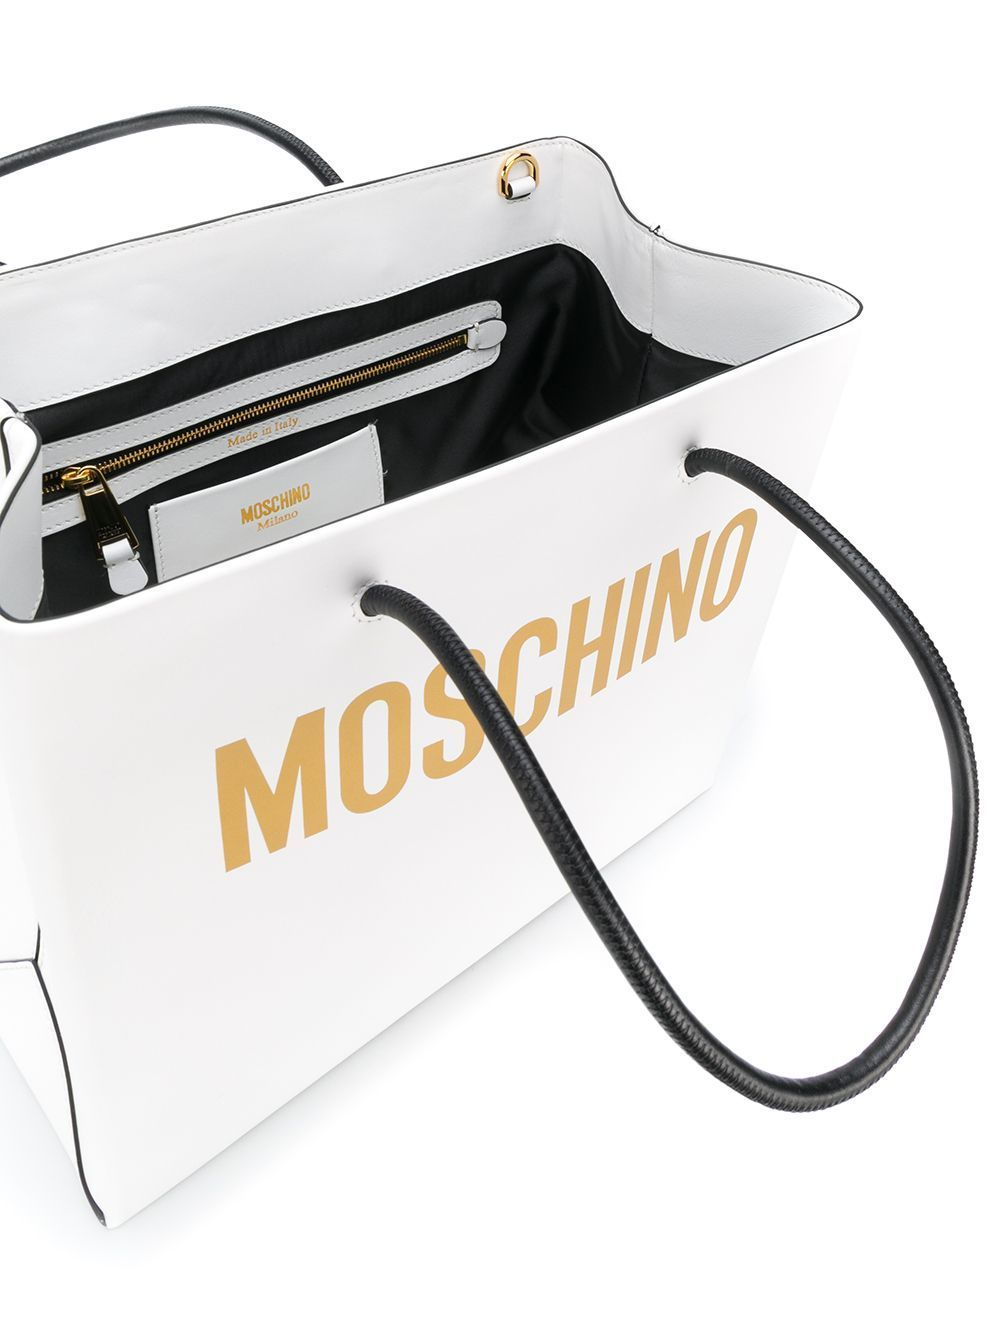 MOSCHINO WOMEN'S A741480014001 WHITE LEATHER HANDBAG